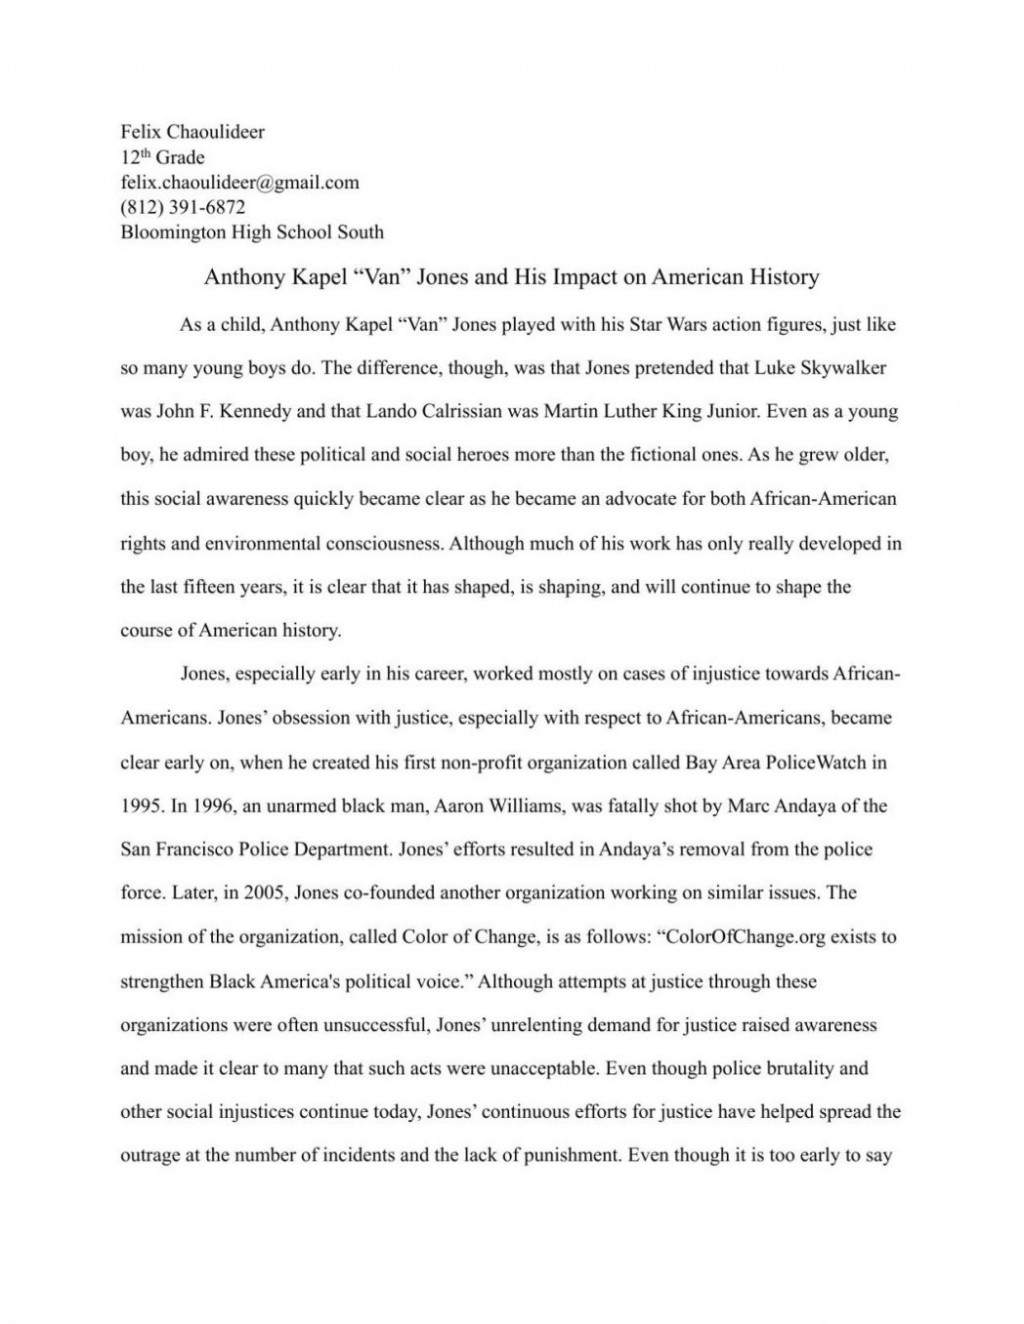 003 Persuasive Essay On Texting While Driving Thesis Statement For And Outline Free Speechs 1048x1356 Singular Essays Argumentative Scholarship Large